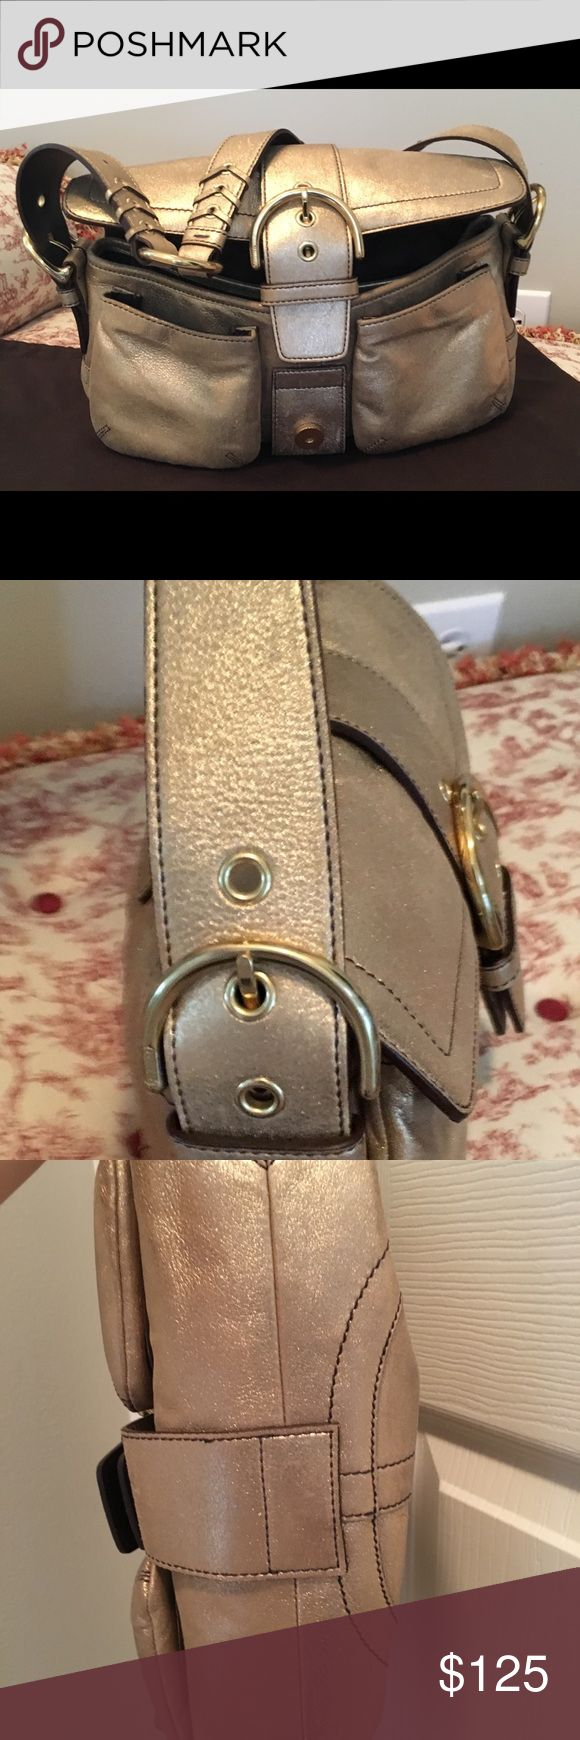 Vintage gold coach handbag This is an authentic coach handbag from circa 2003. Carried once to the Fernando Vargas fight at the All State arena.  Perfect condition! Coach Bags Shoulder Bags